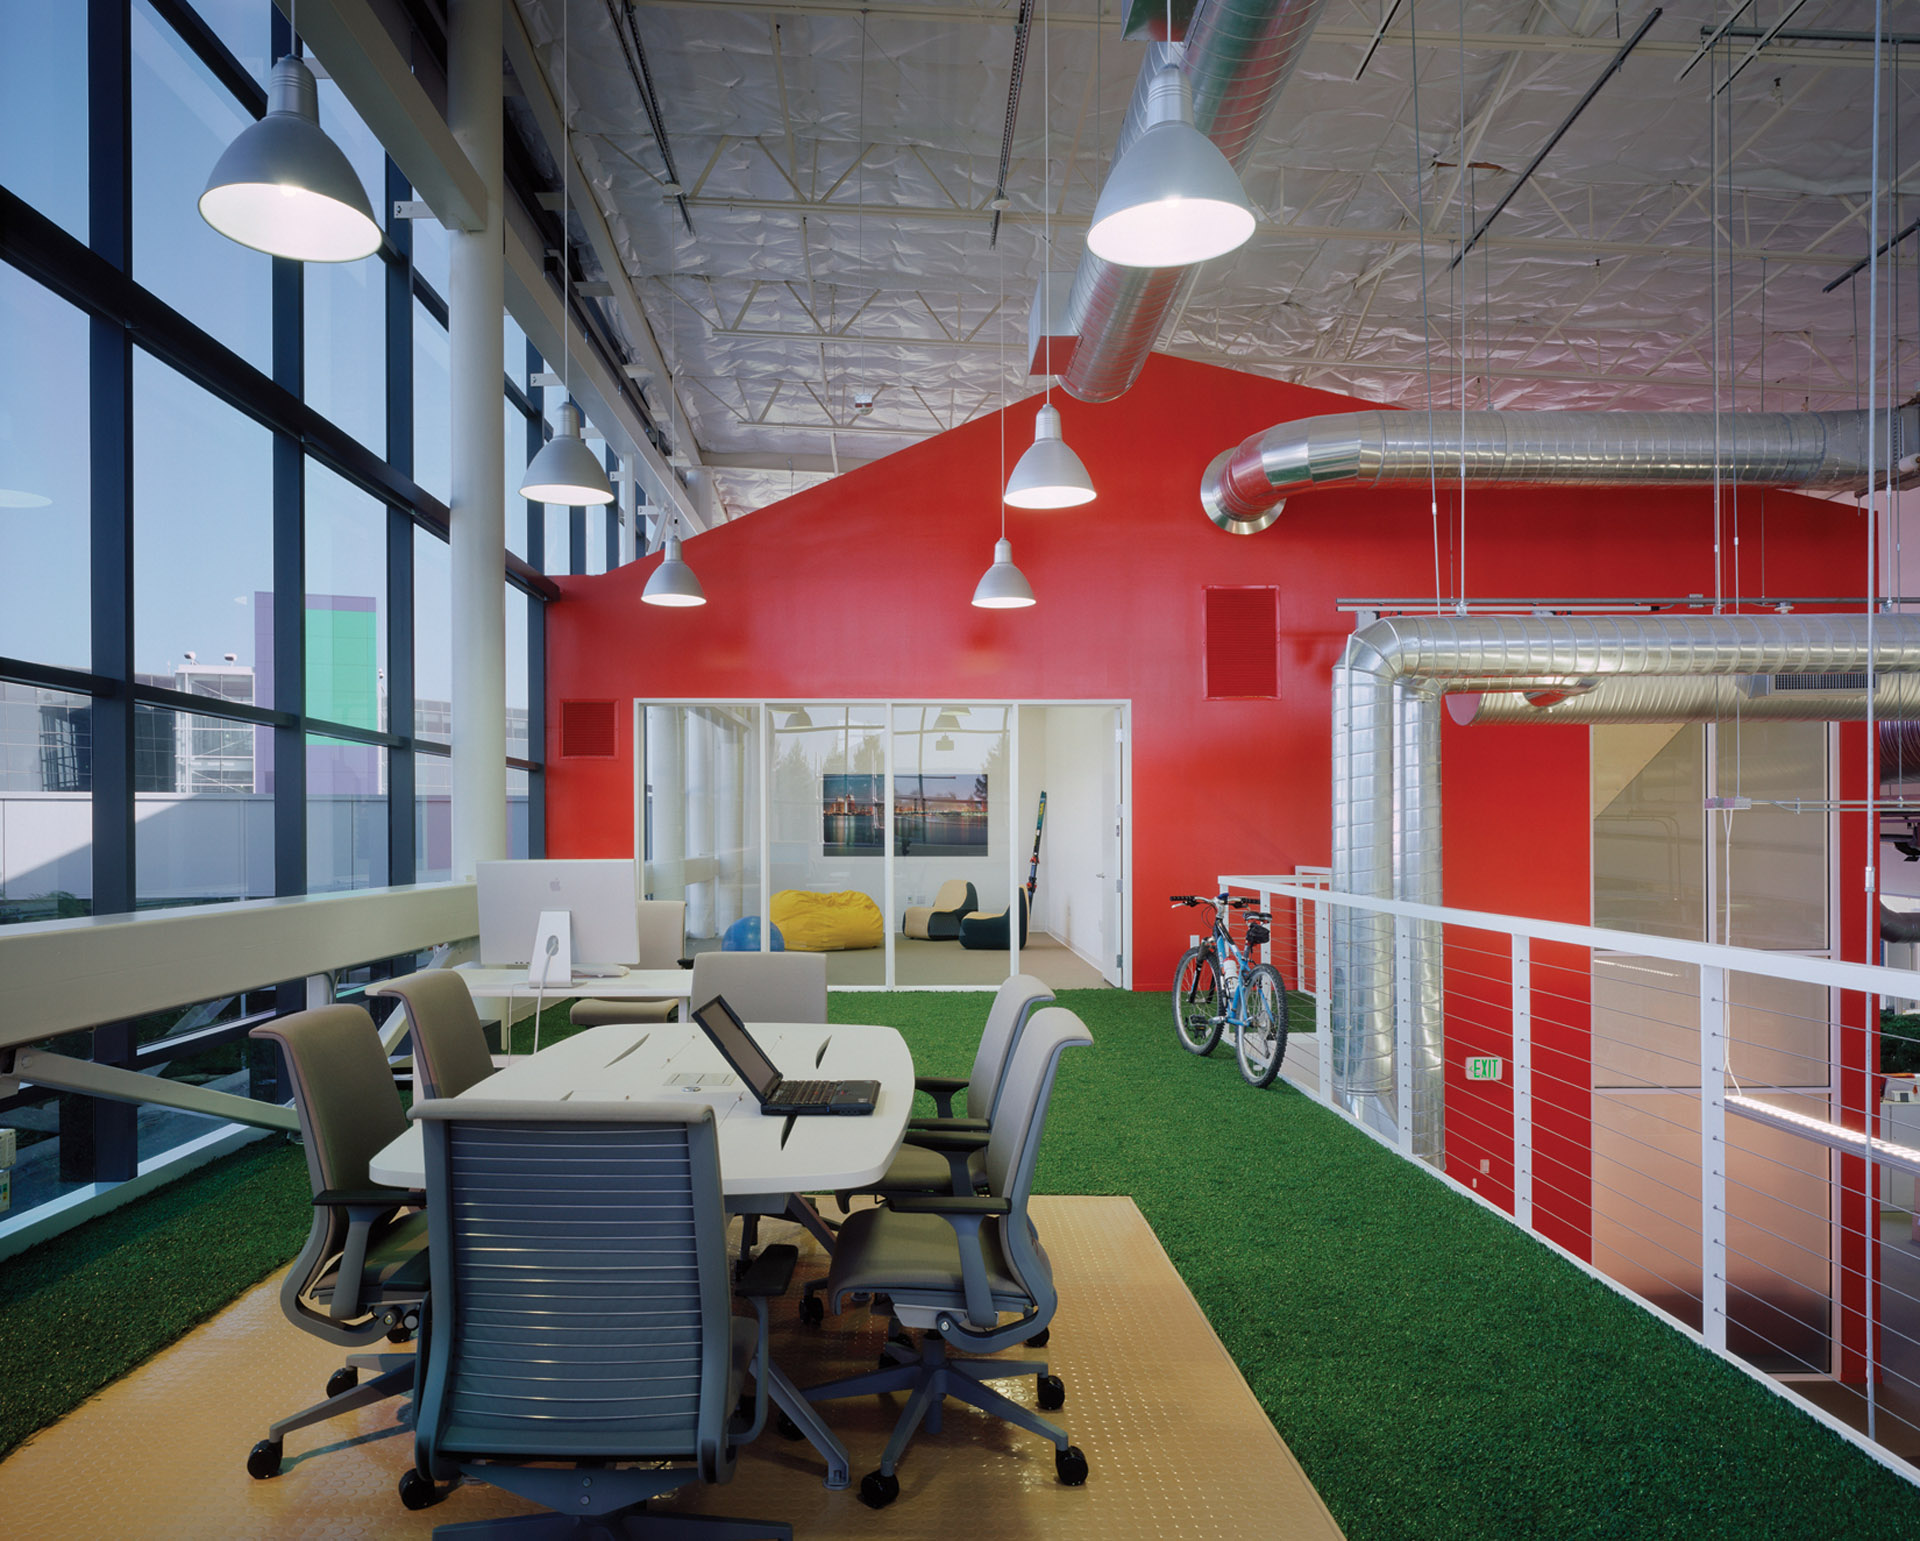 Google office space design Interior Google Headquarters Clive Wilkinson Architects Clive Wilkinson Architects Google Headquarters